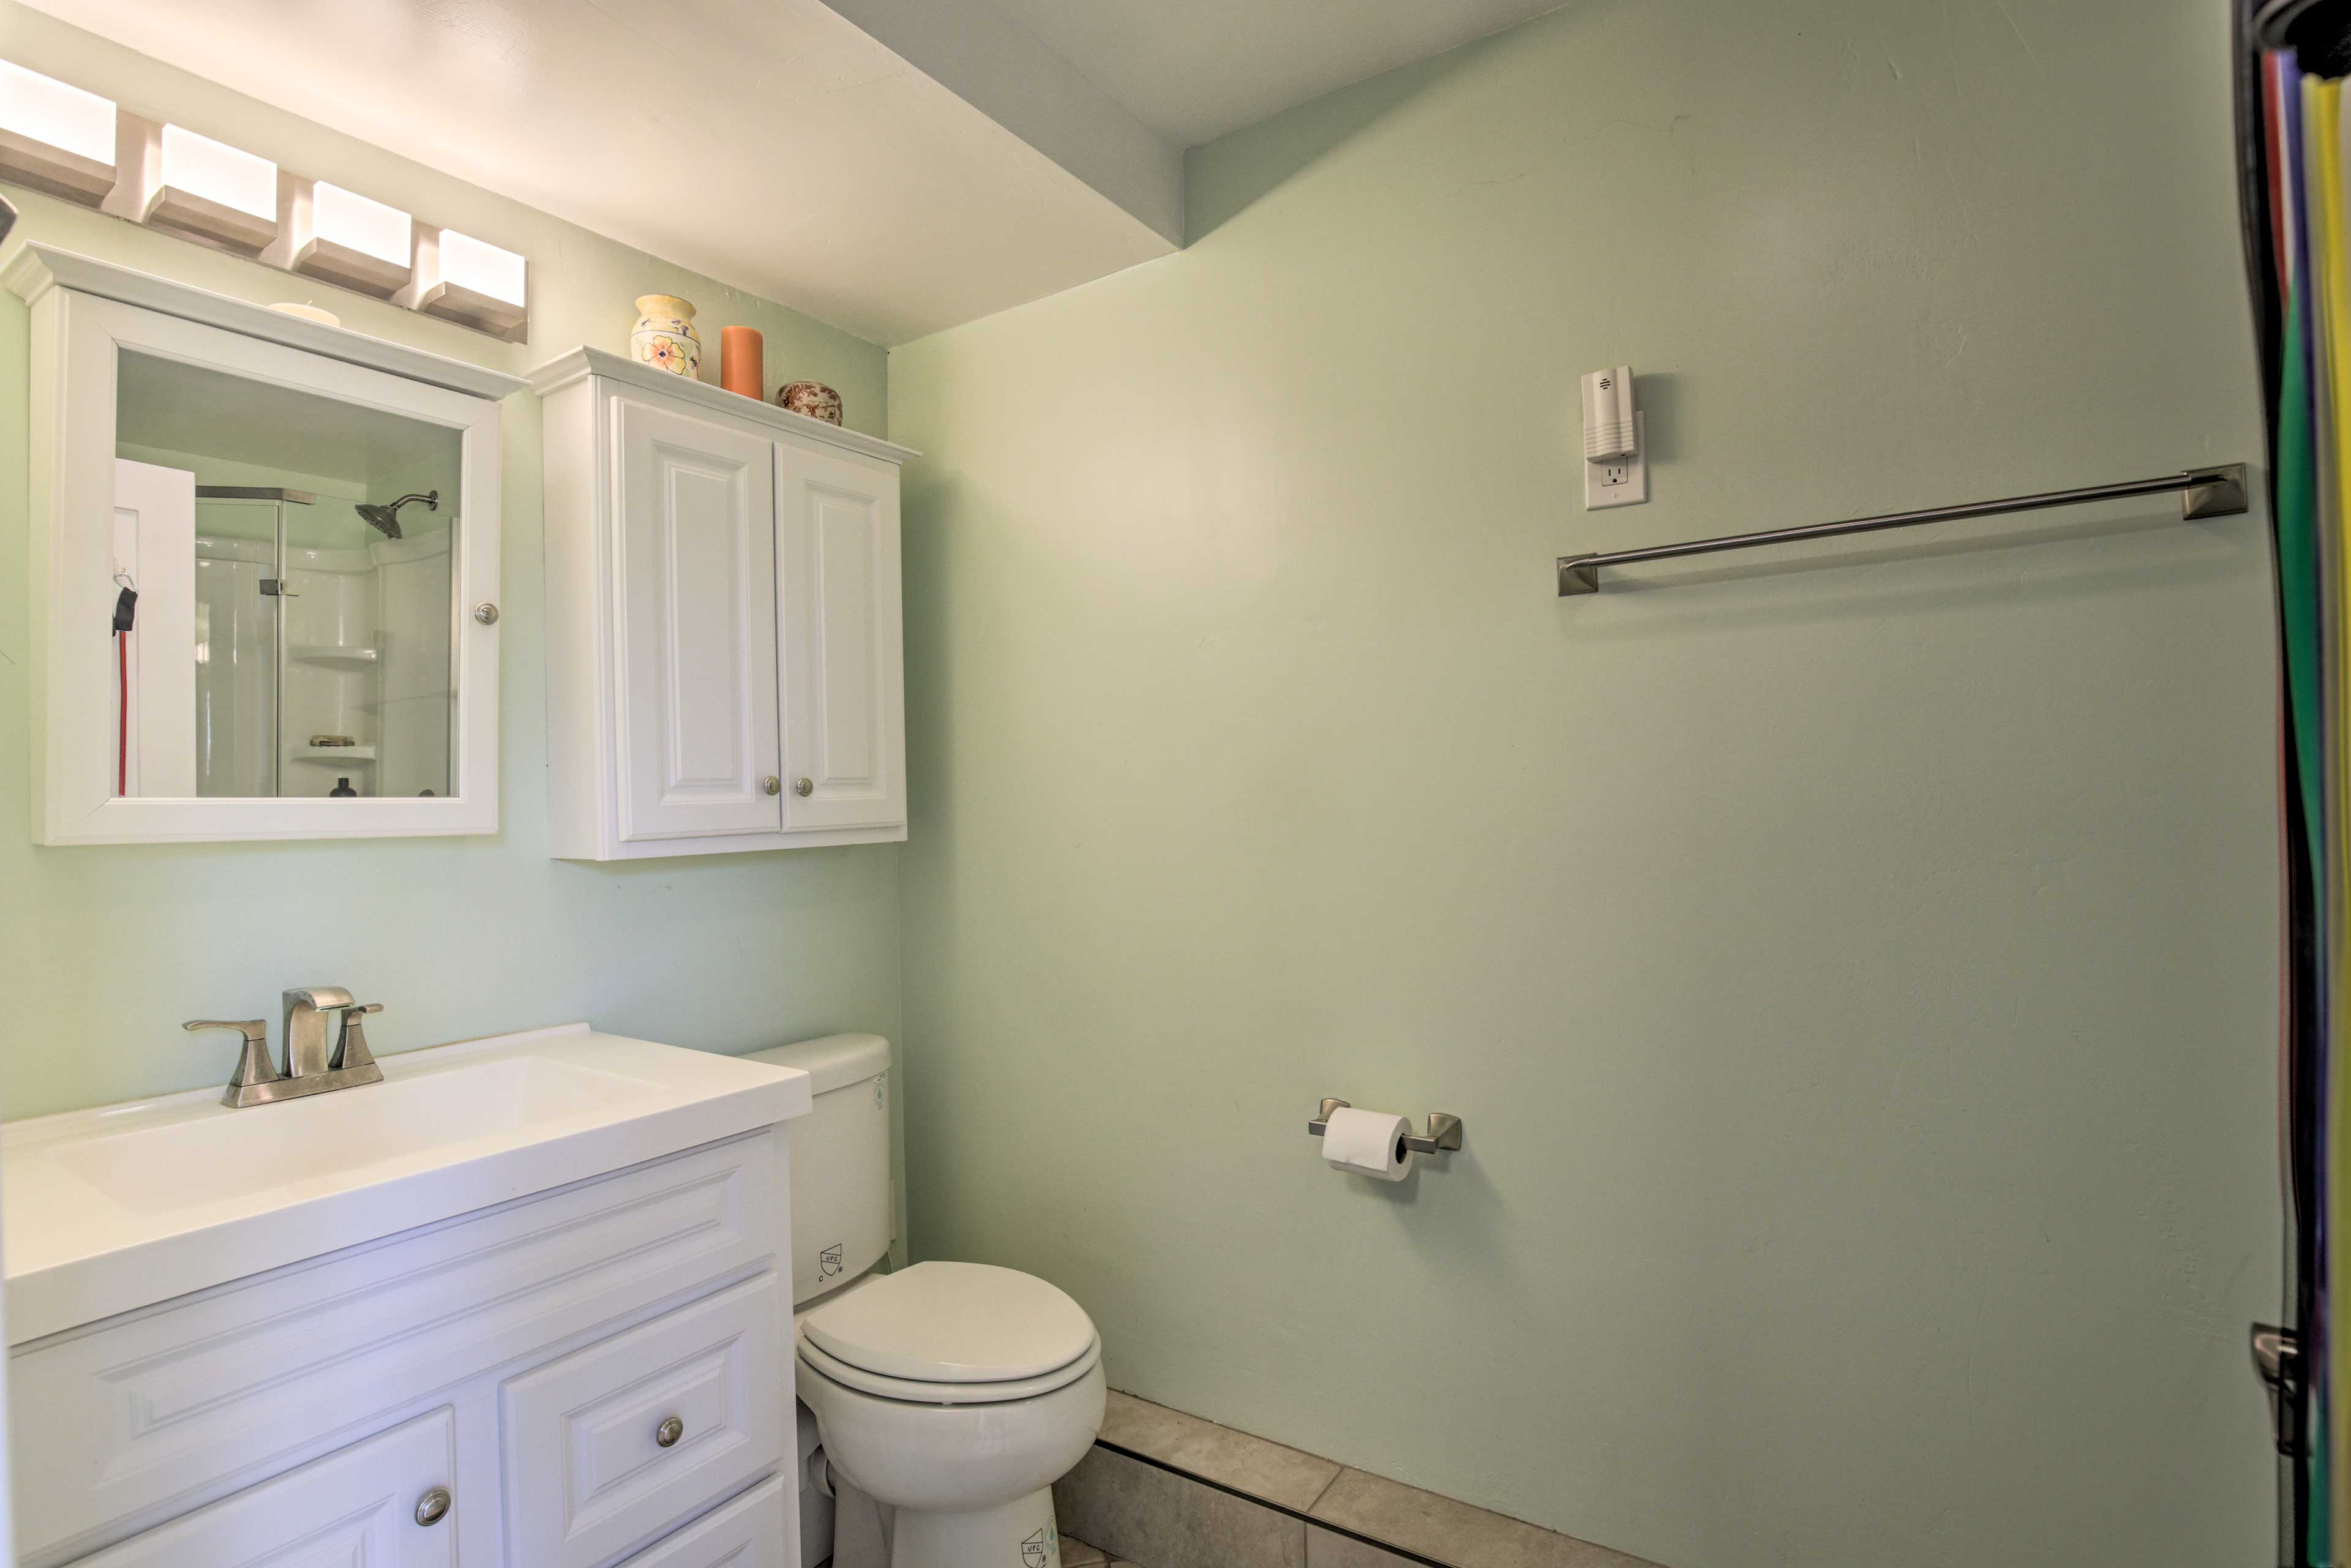 Get ready for the day with ease in the en-suite bathroom.